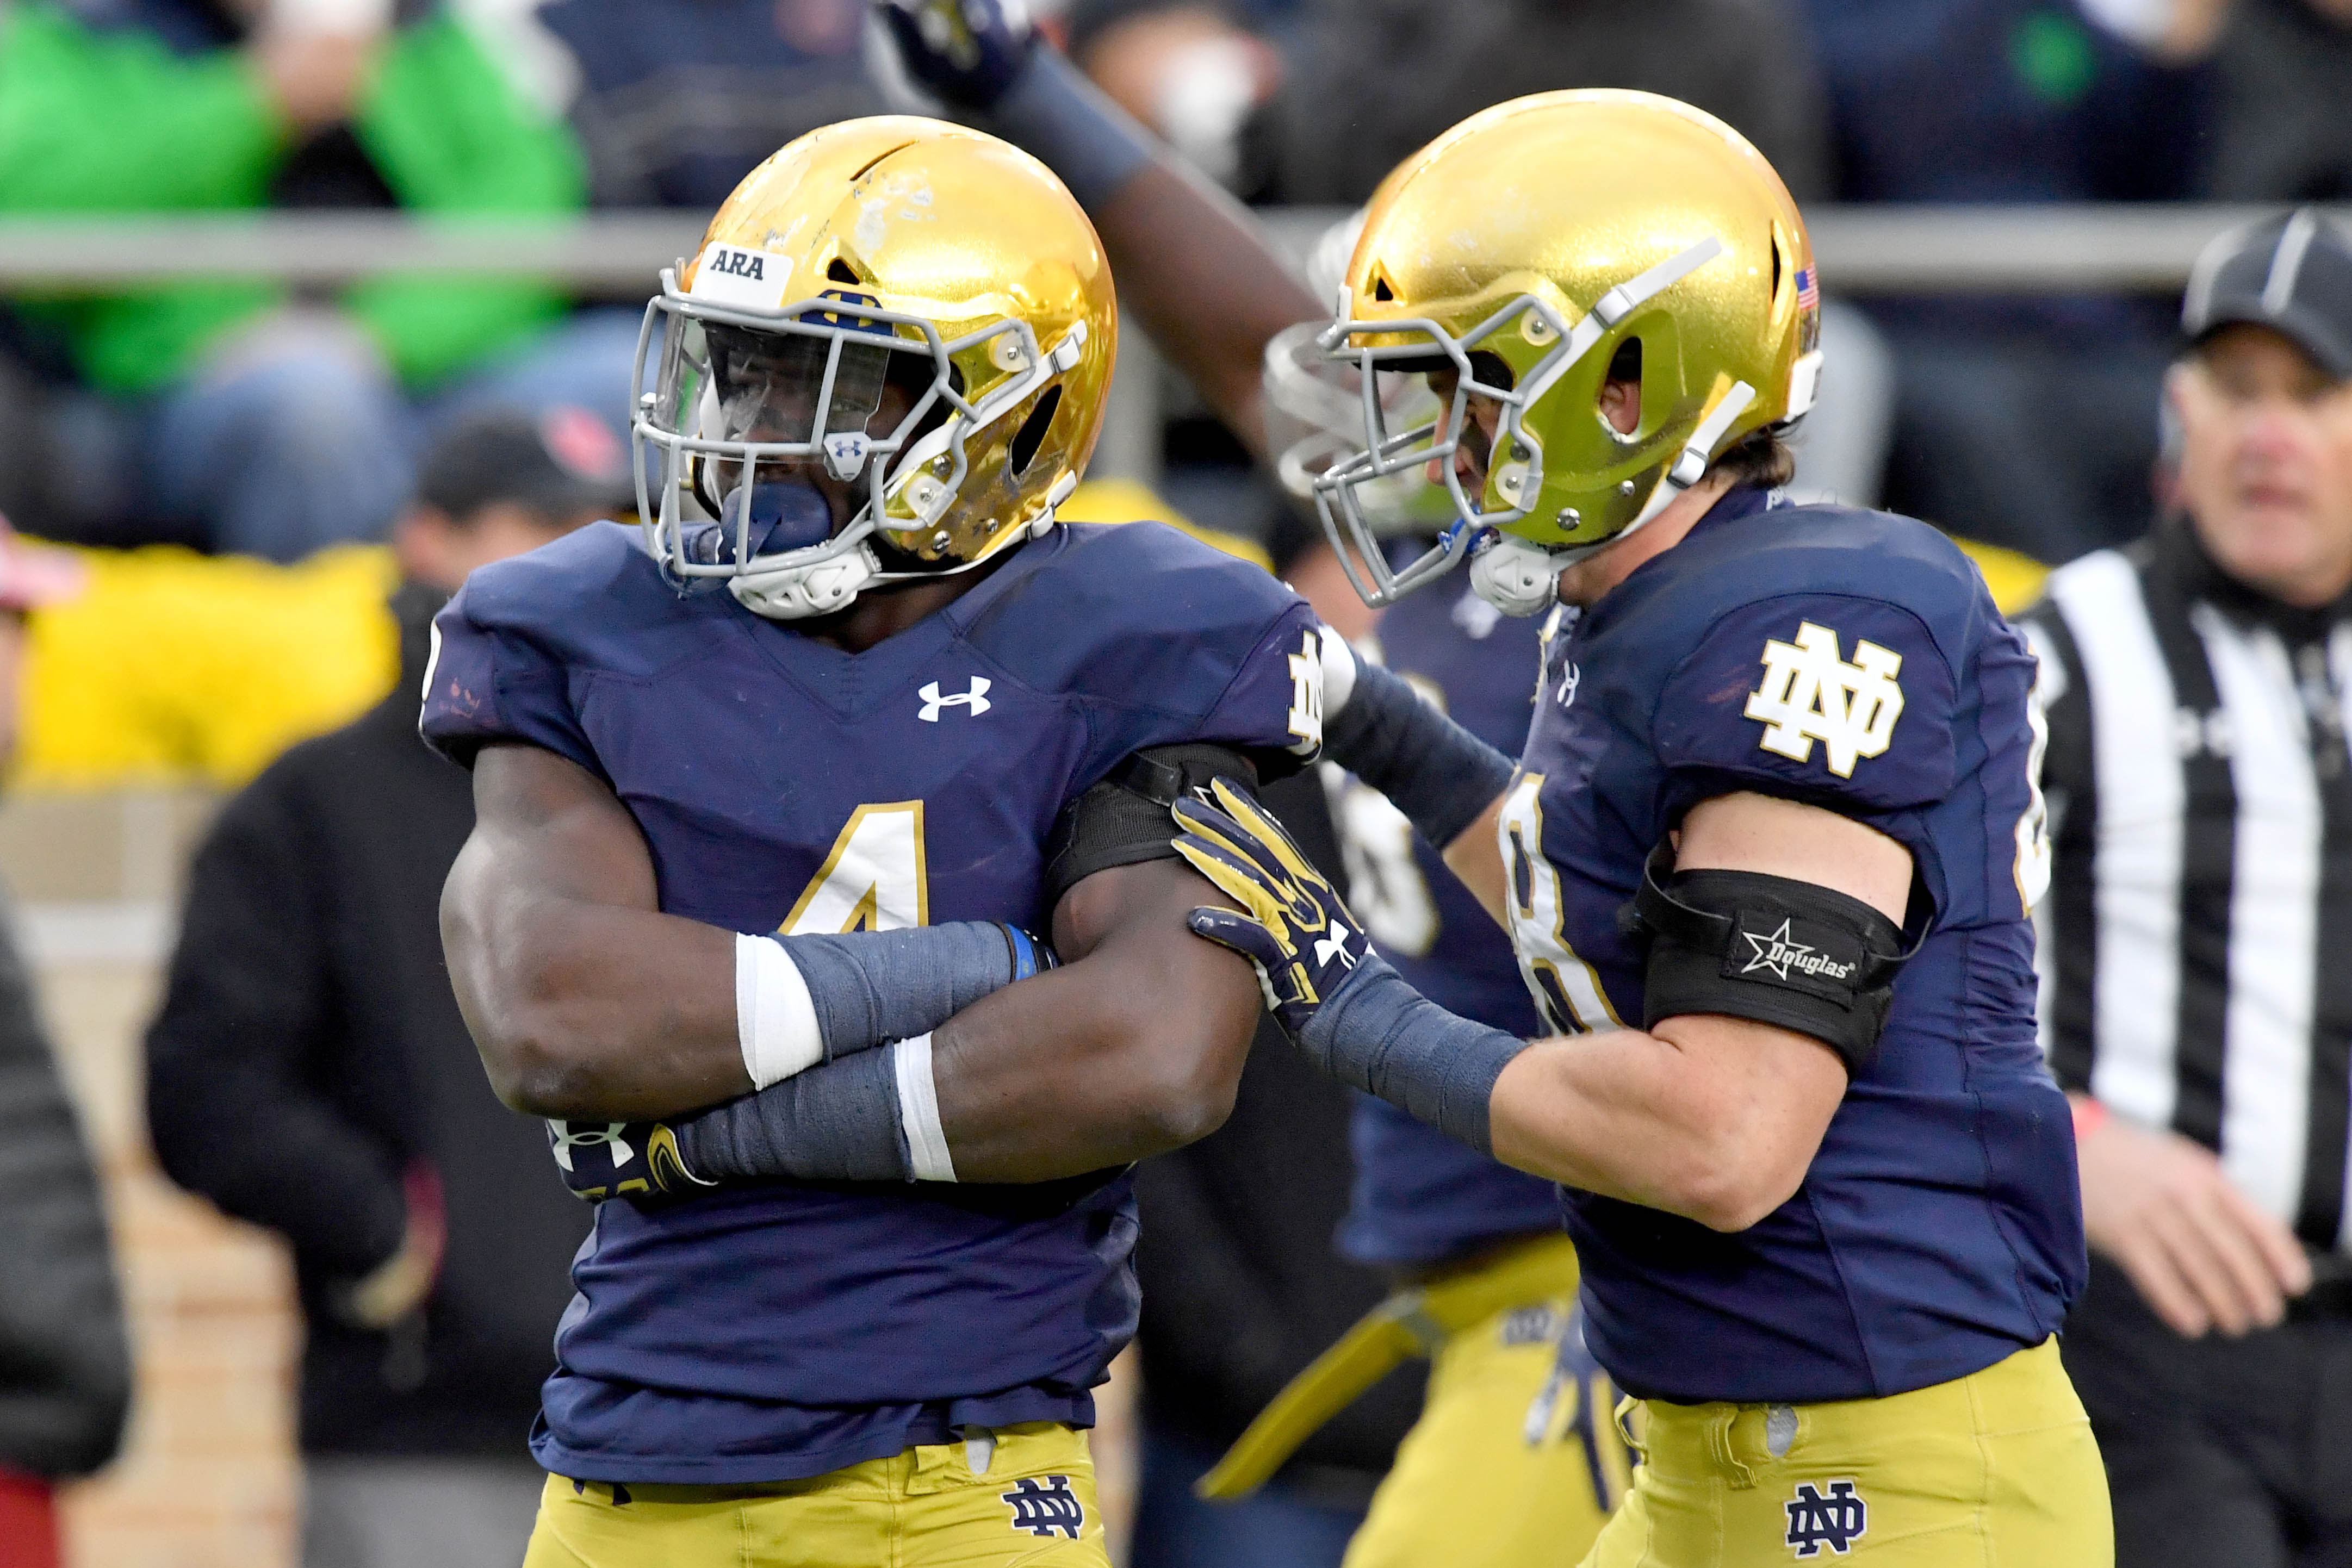 separation shoes 5878c 759cb This Guy Plays Notre Dame Football: #4 Te'von Coney - One ...